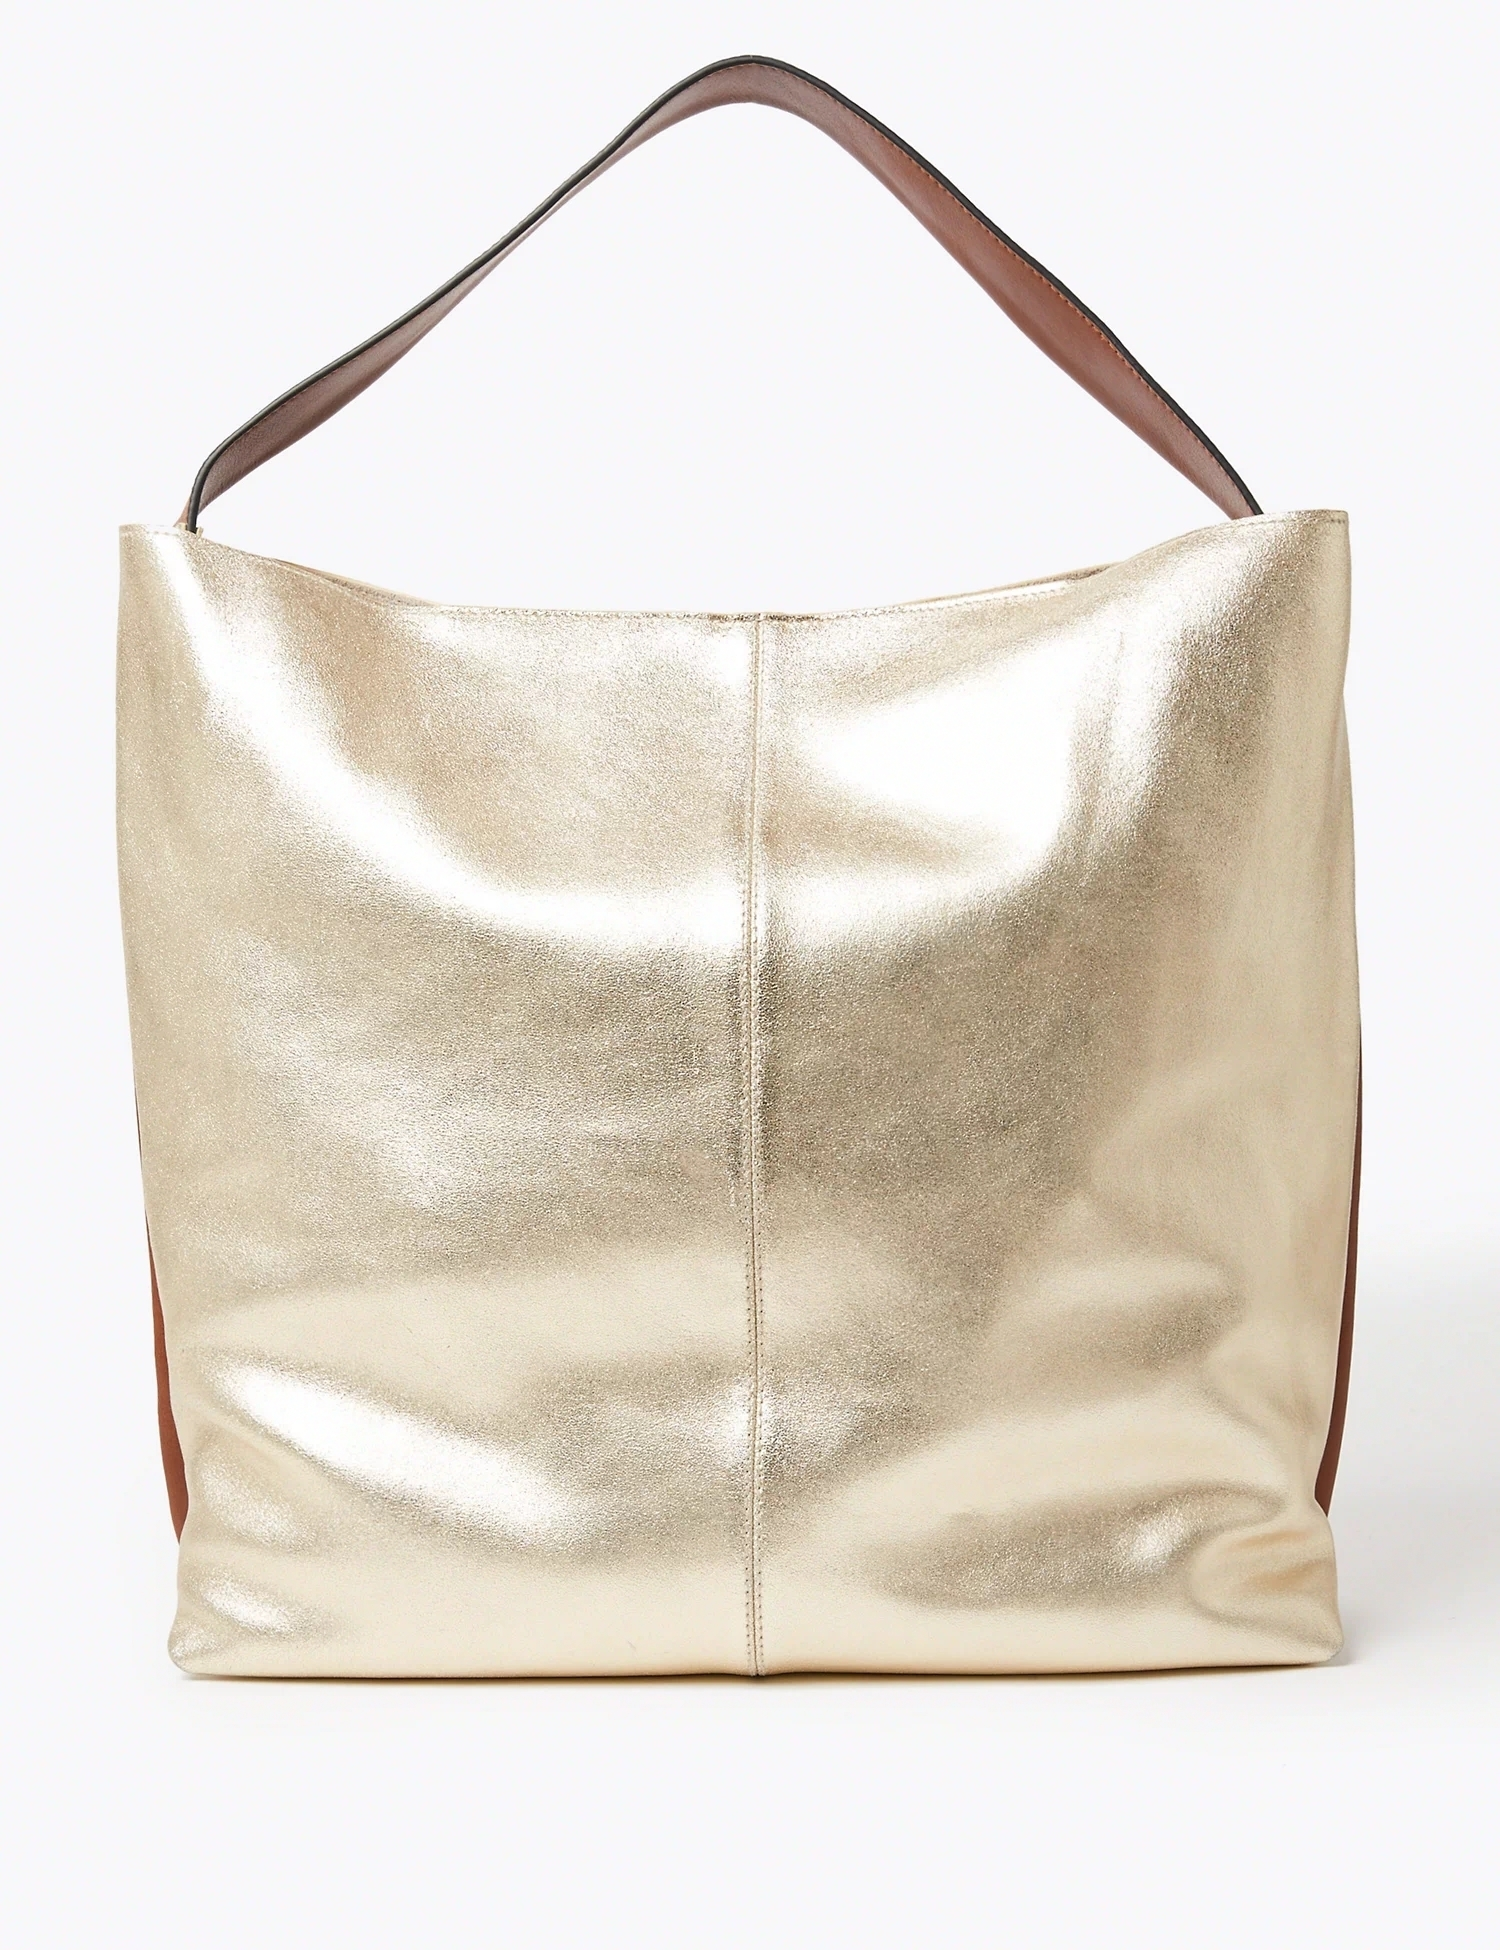 shop m&s collection bags